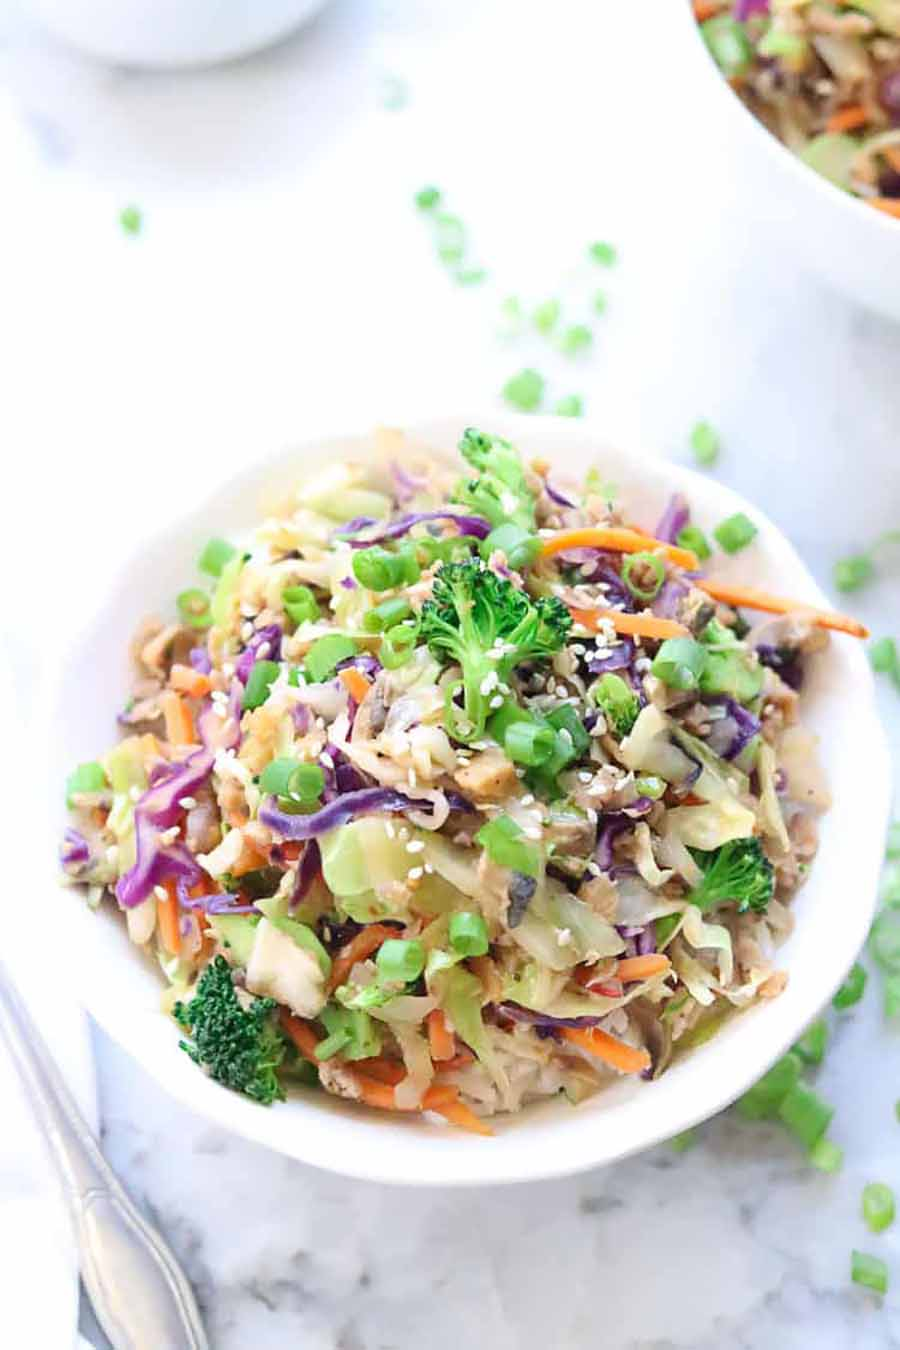 Vegan egg roll in a bowl sitting on a table